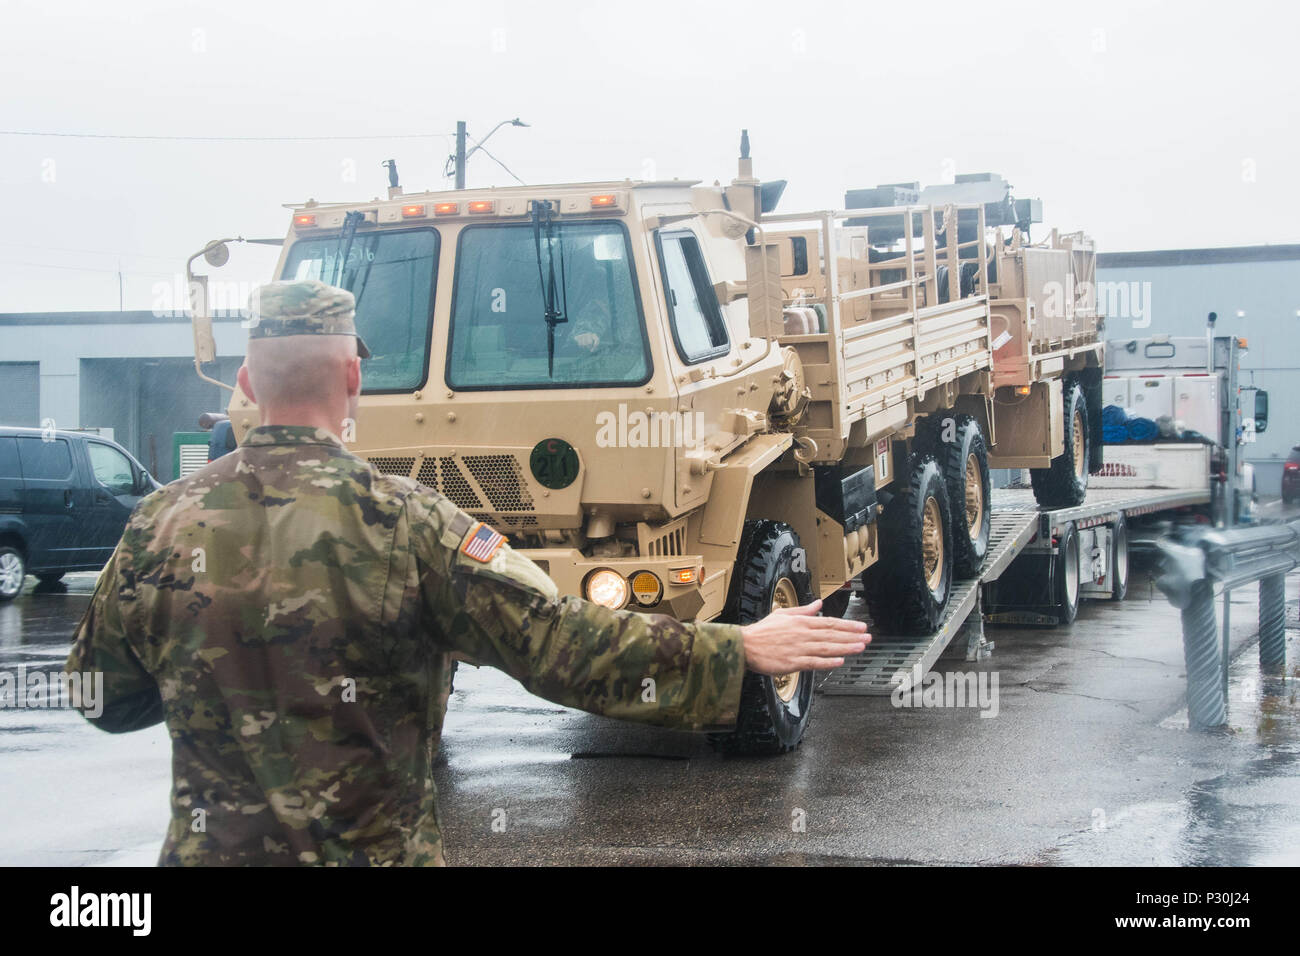 A member from South Carolina Army National Guard's 263rd Army Air and Missile Defense Command ground-guides a Light Equipment Transport and trailer off of another transport flatbed at 22 Wing North Bay in preparation for the Vigilant Shield Air Defence Artillery Field Training Exercise on August 12, 2016. (Canadian Armed Forces photo by Cpl Joseph Morin) Stock Photo